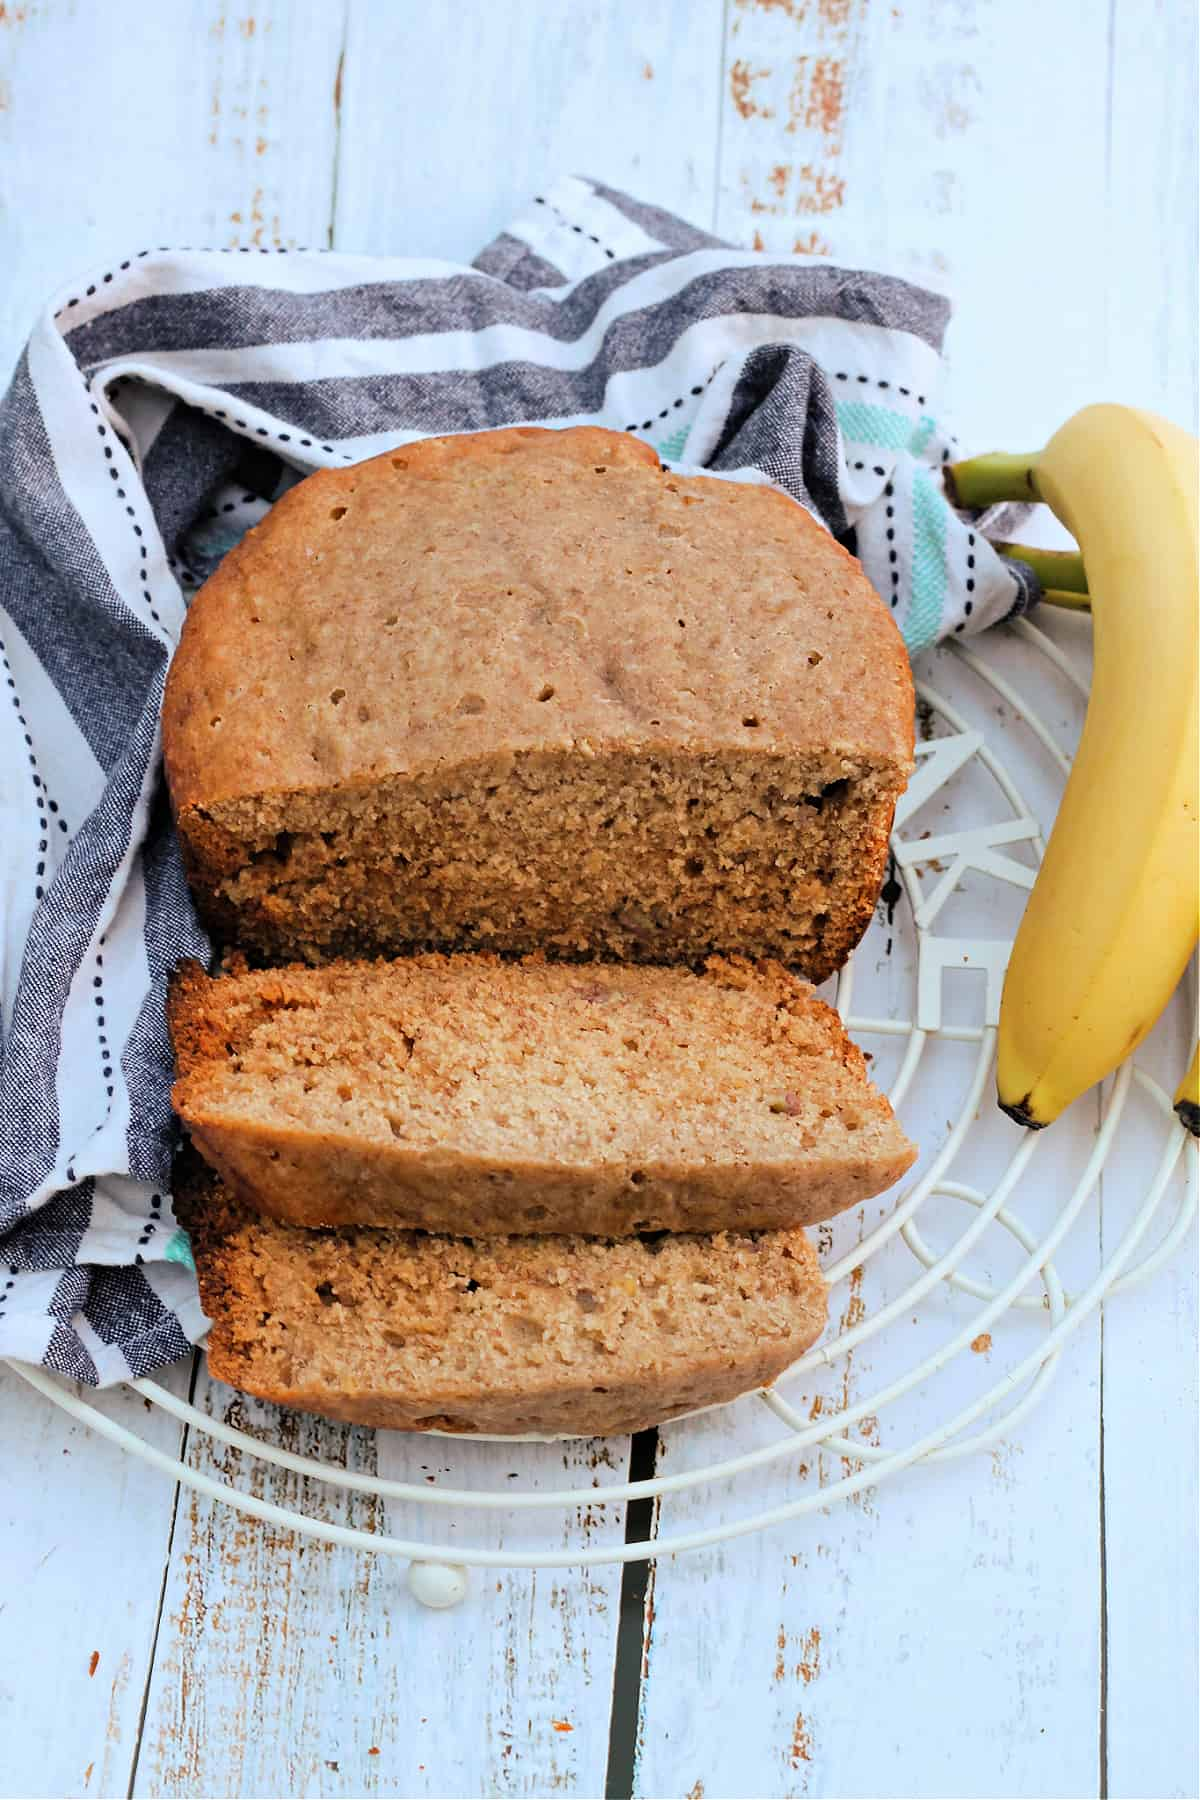 Banana bread on rack with two slices cut out, with bananas and a cloth behind.